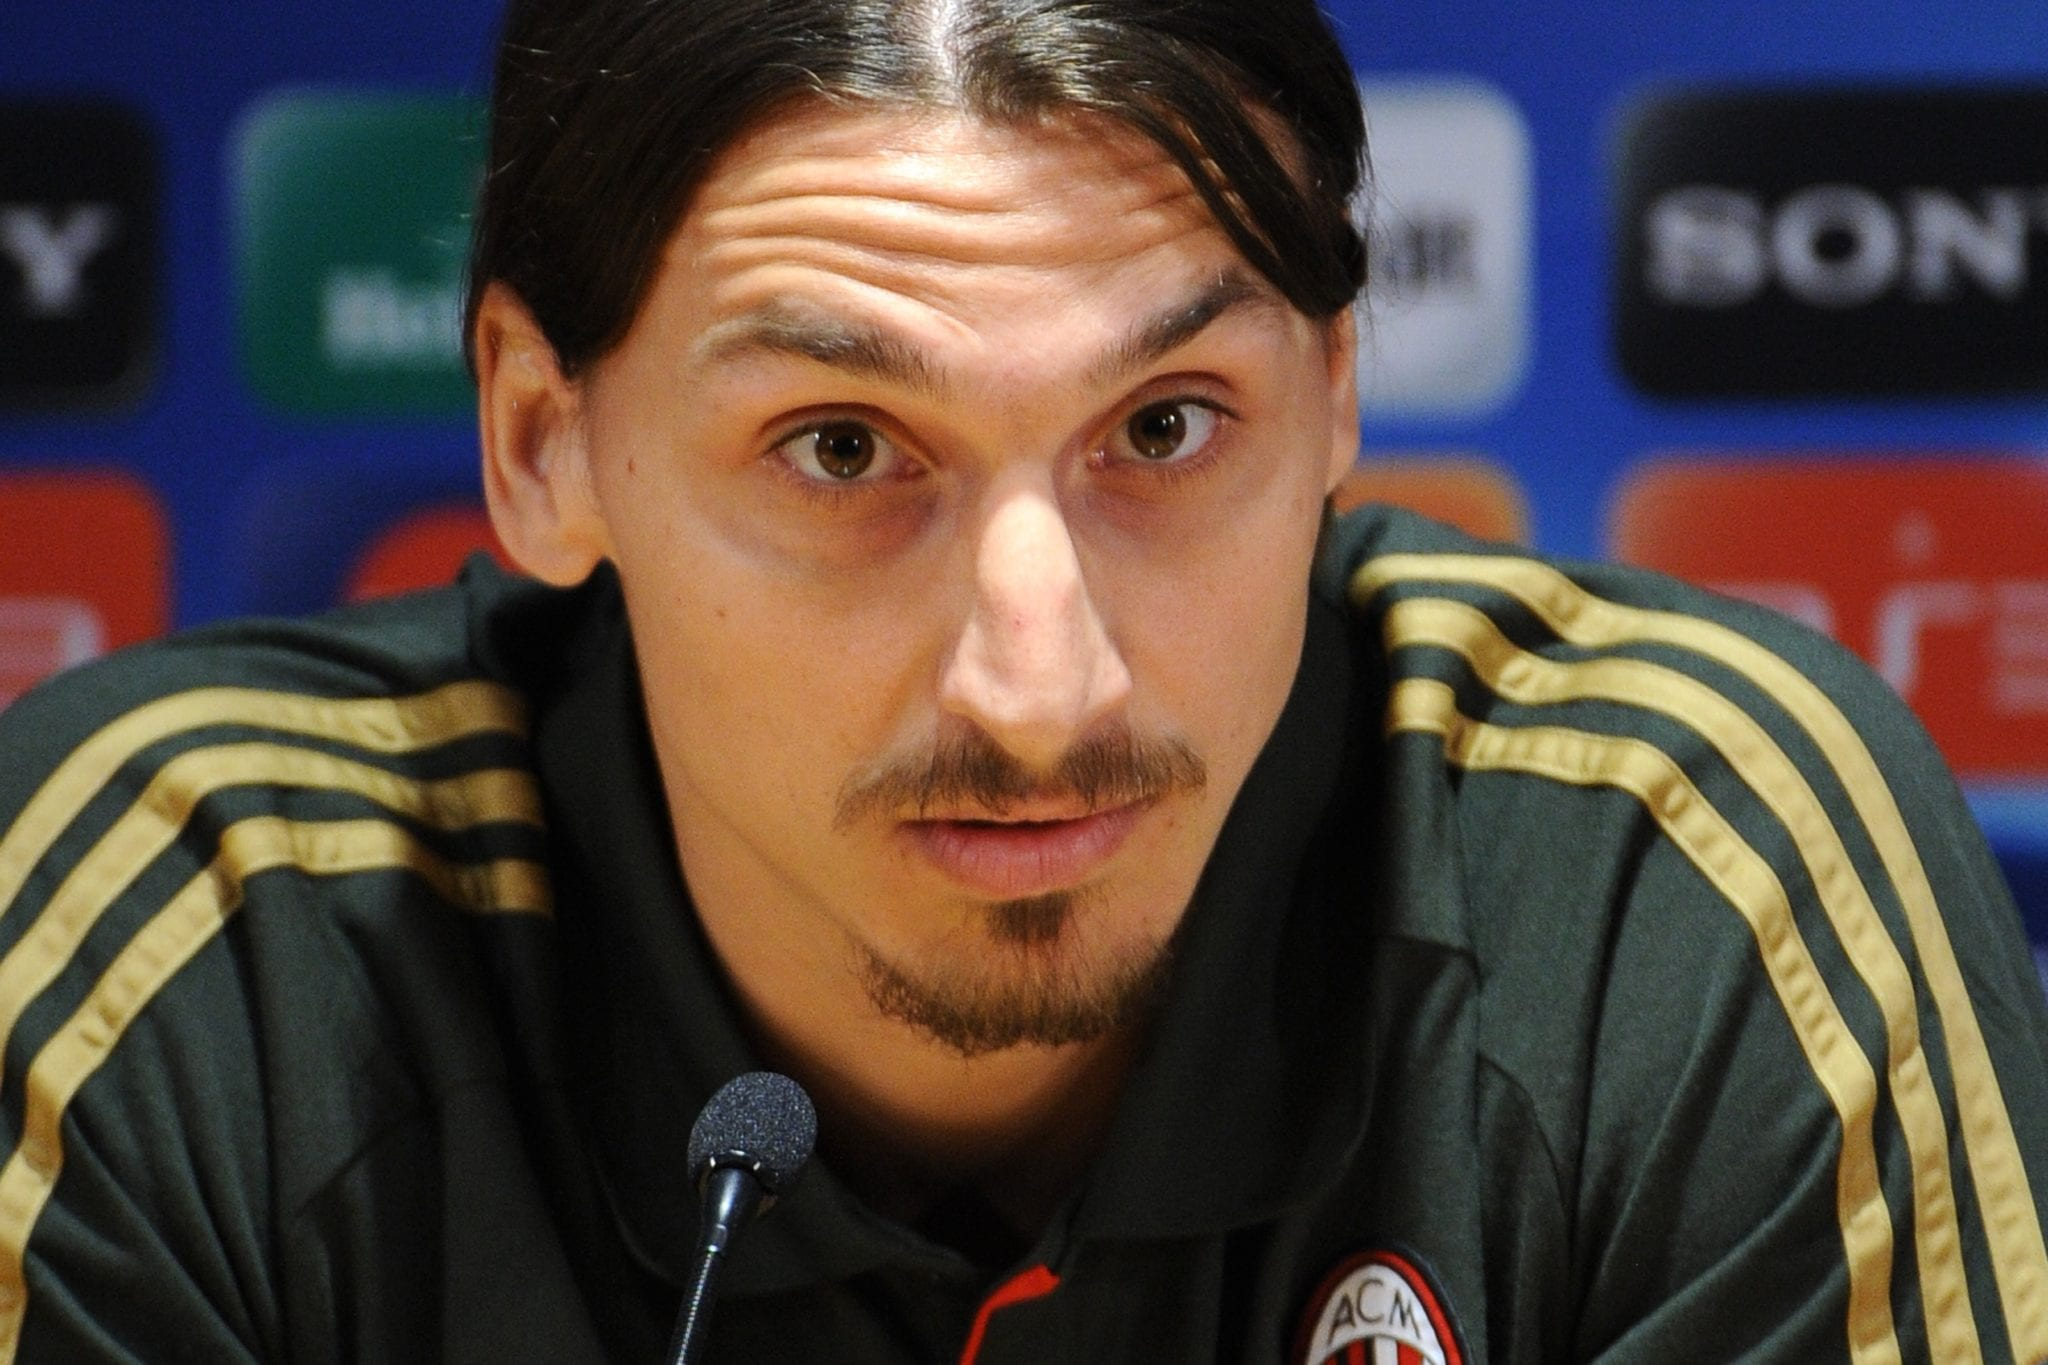 zlatan ibrahimovic | © OLIVIER MORIN/AFP/Getty Images